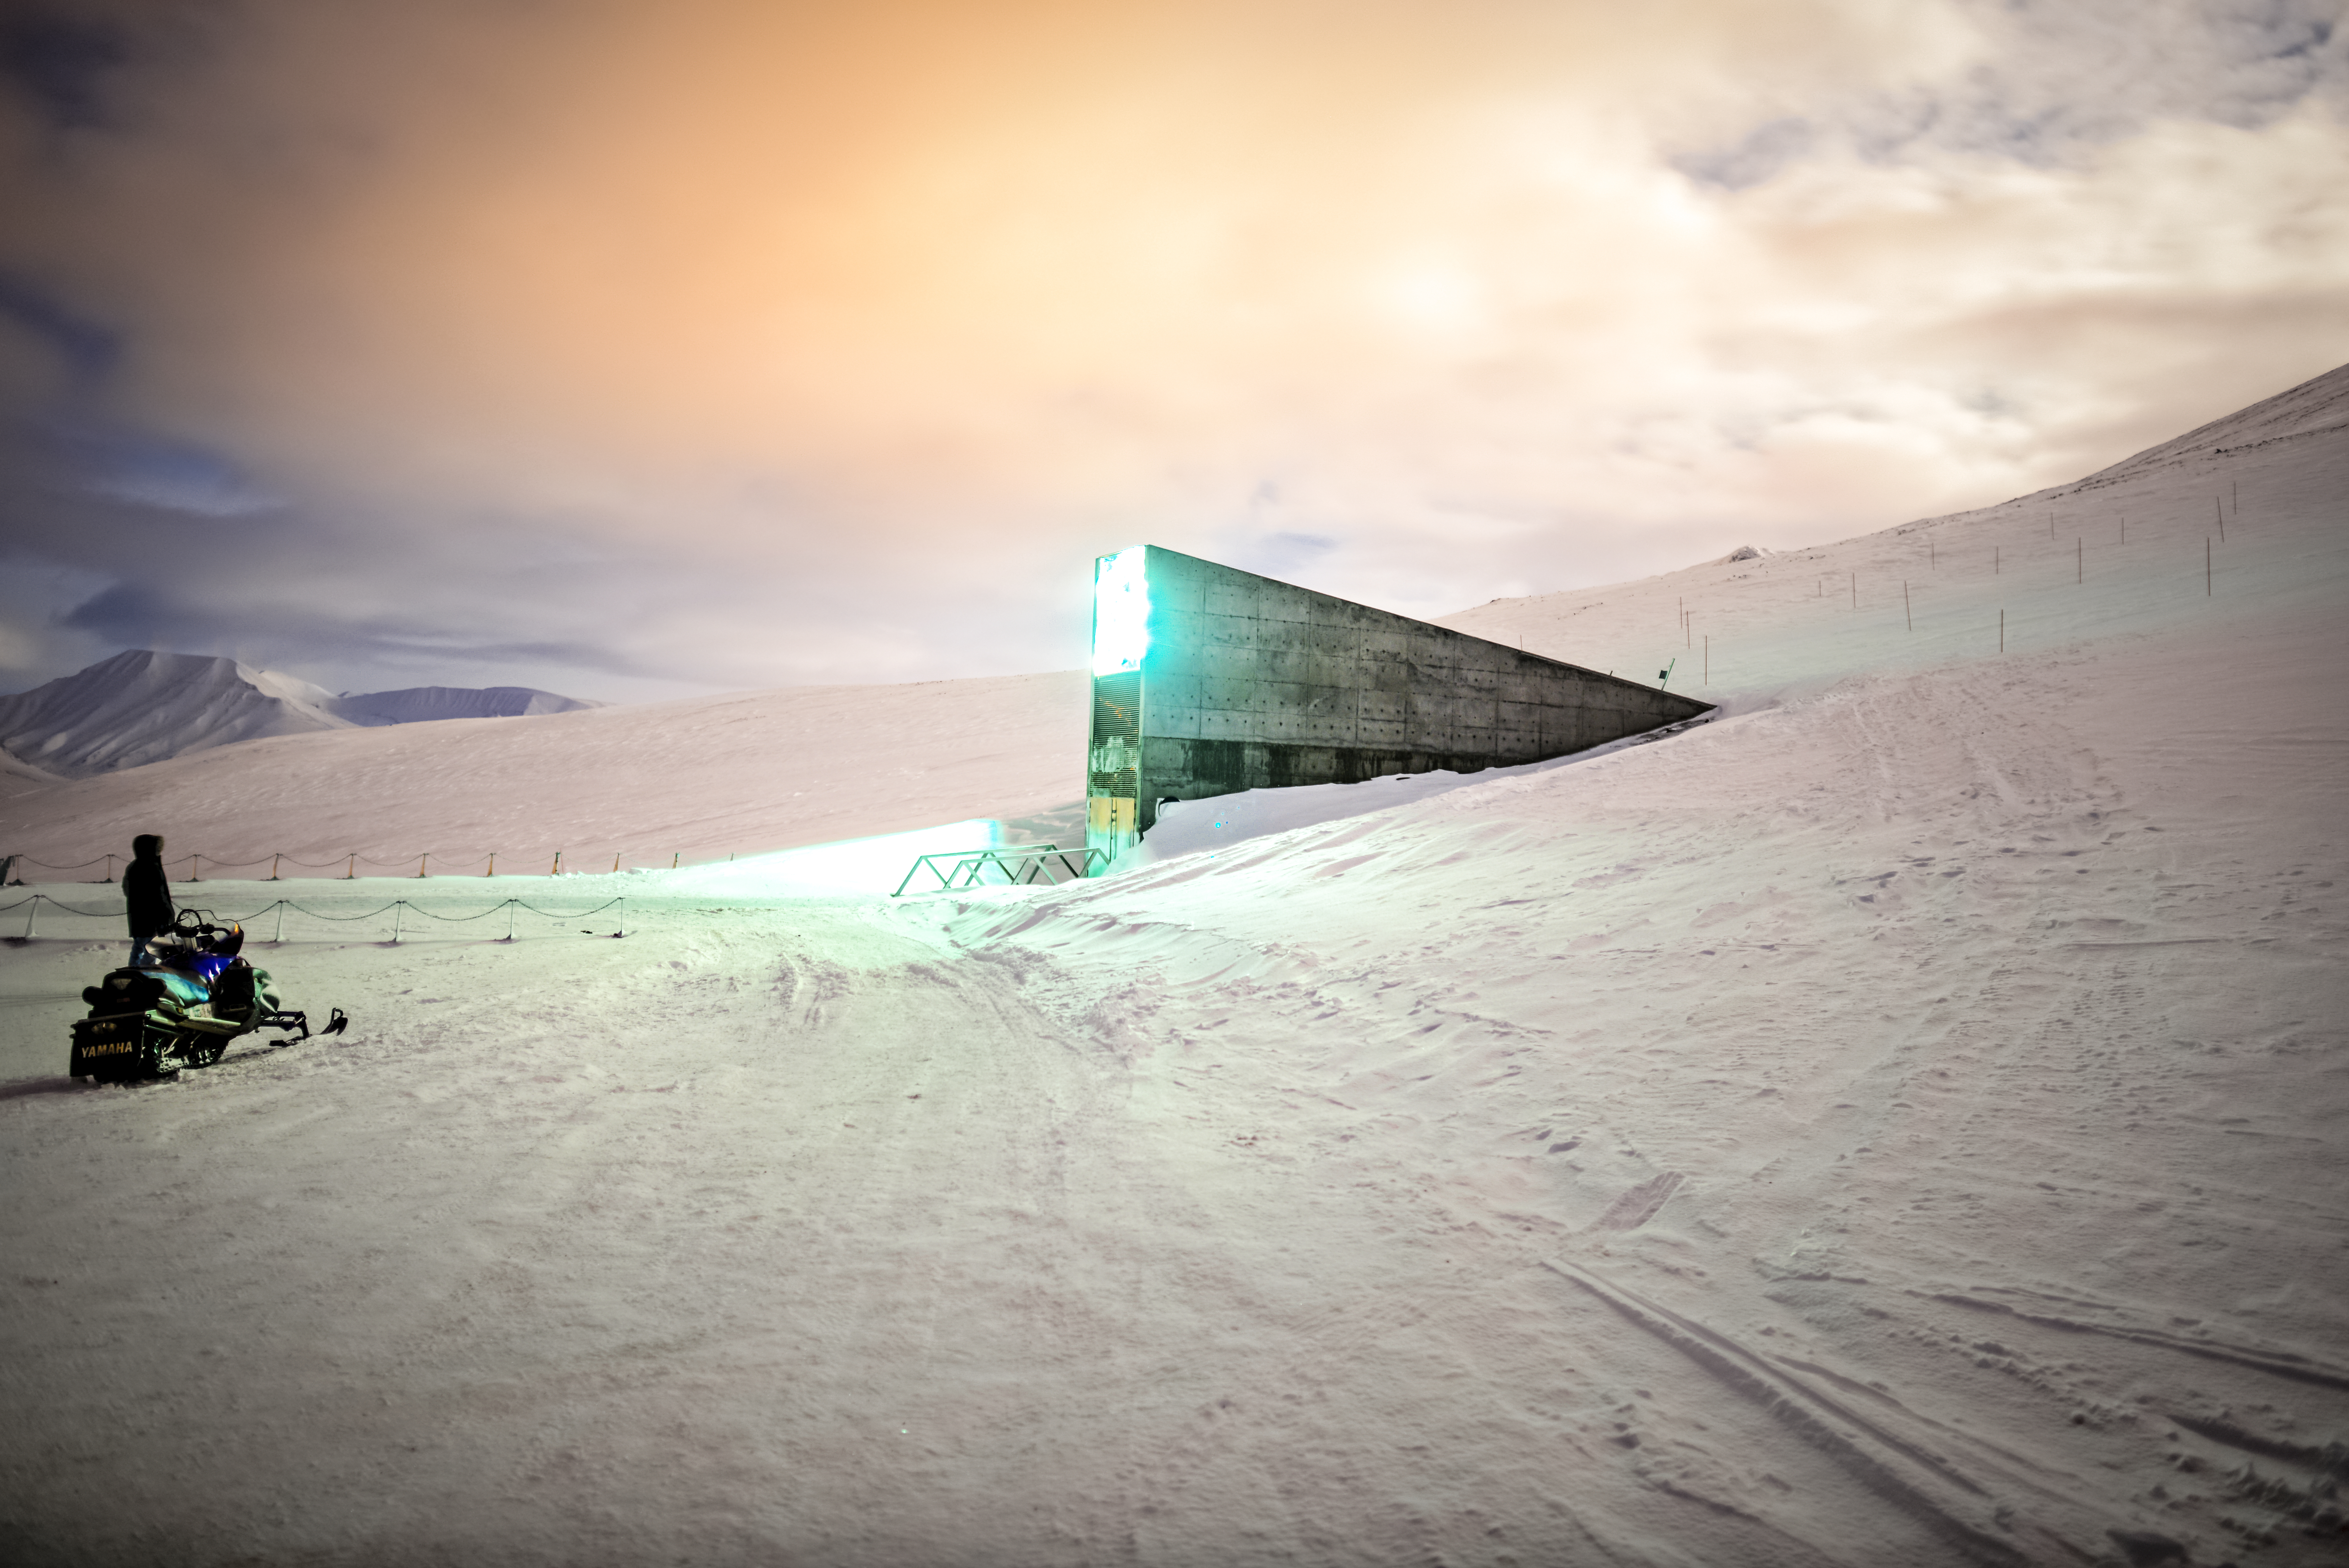 The entrance to the Svalbard Global Seed Vault, or